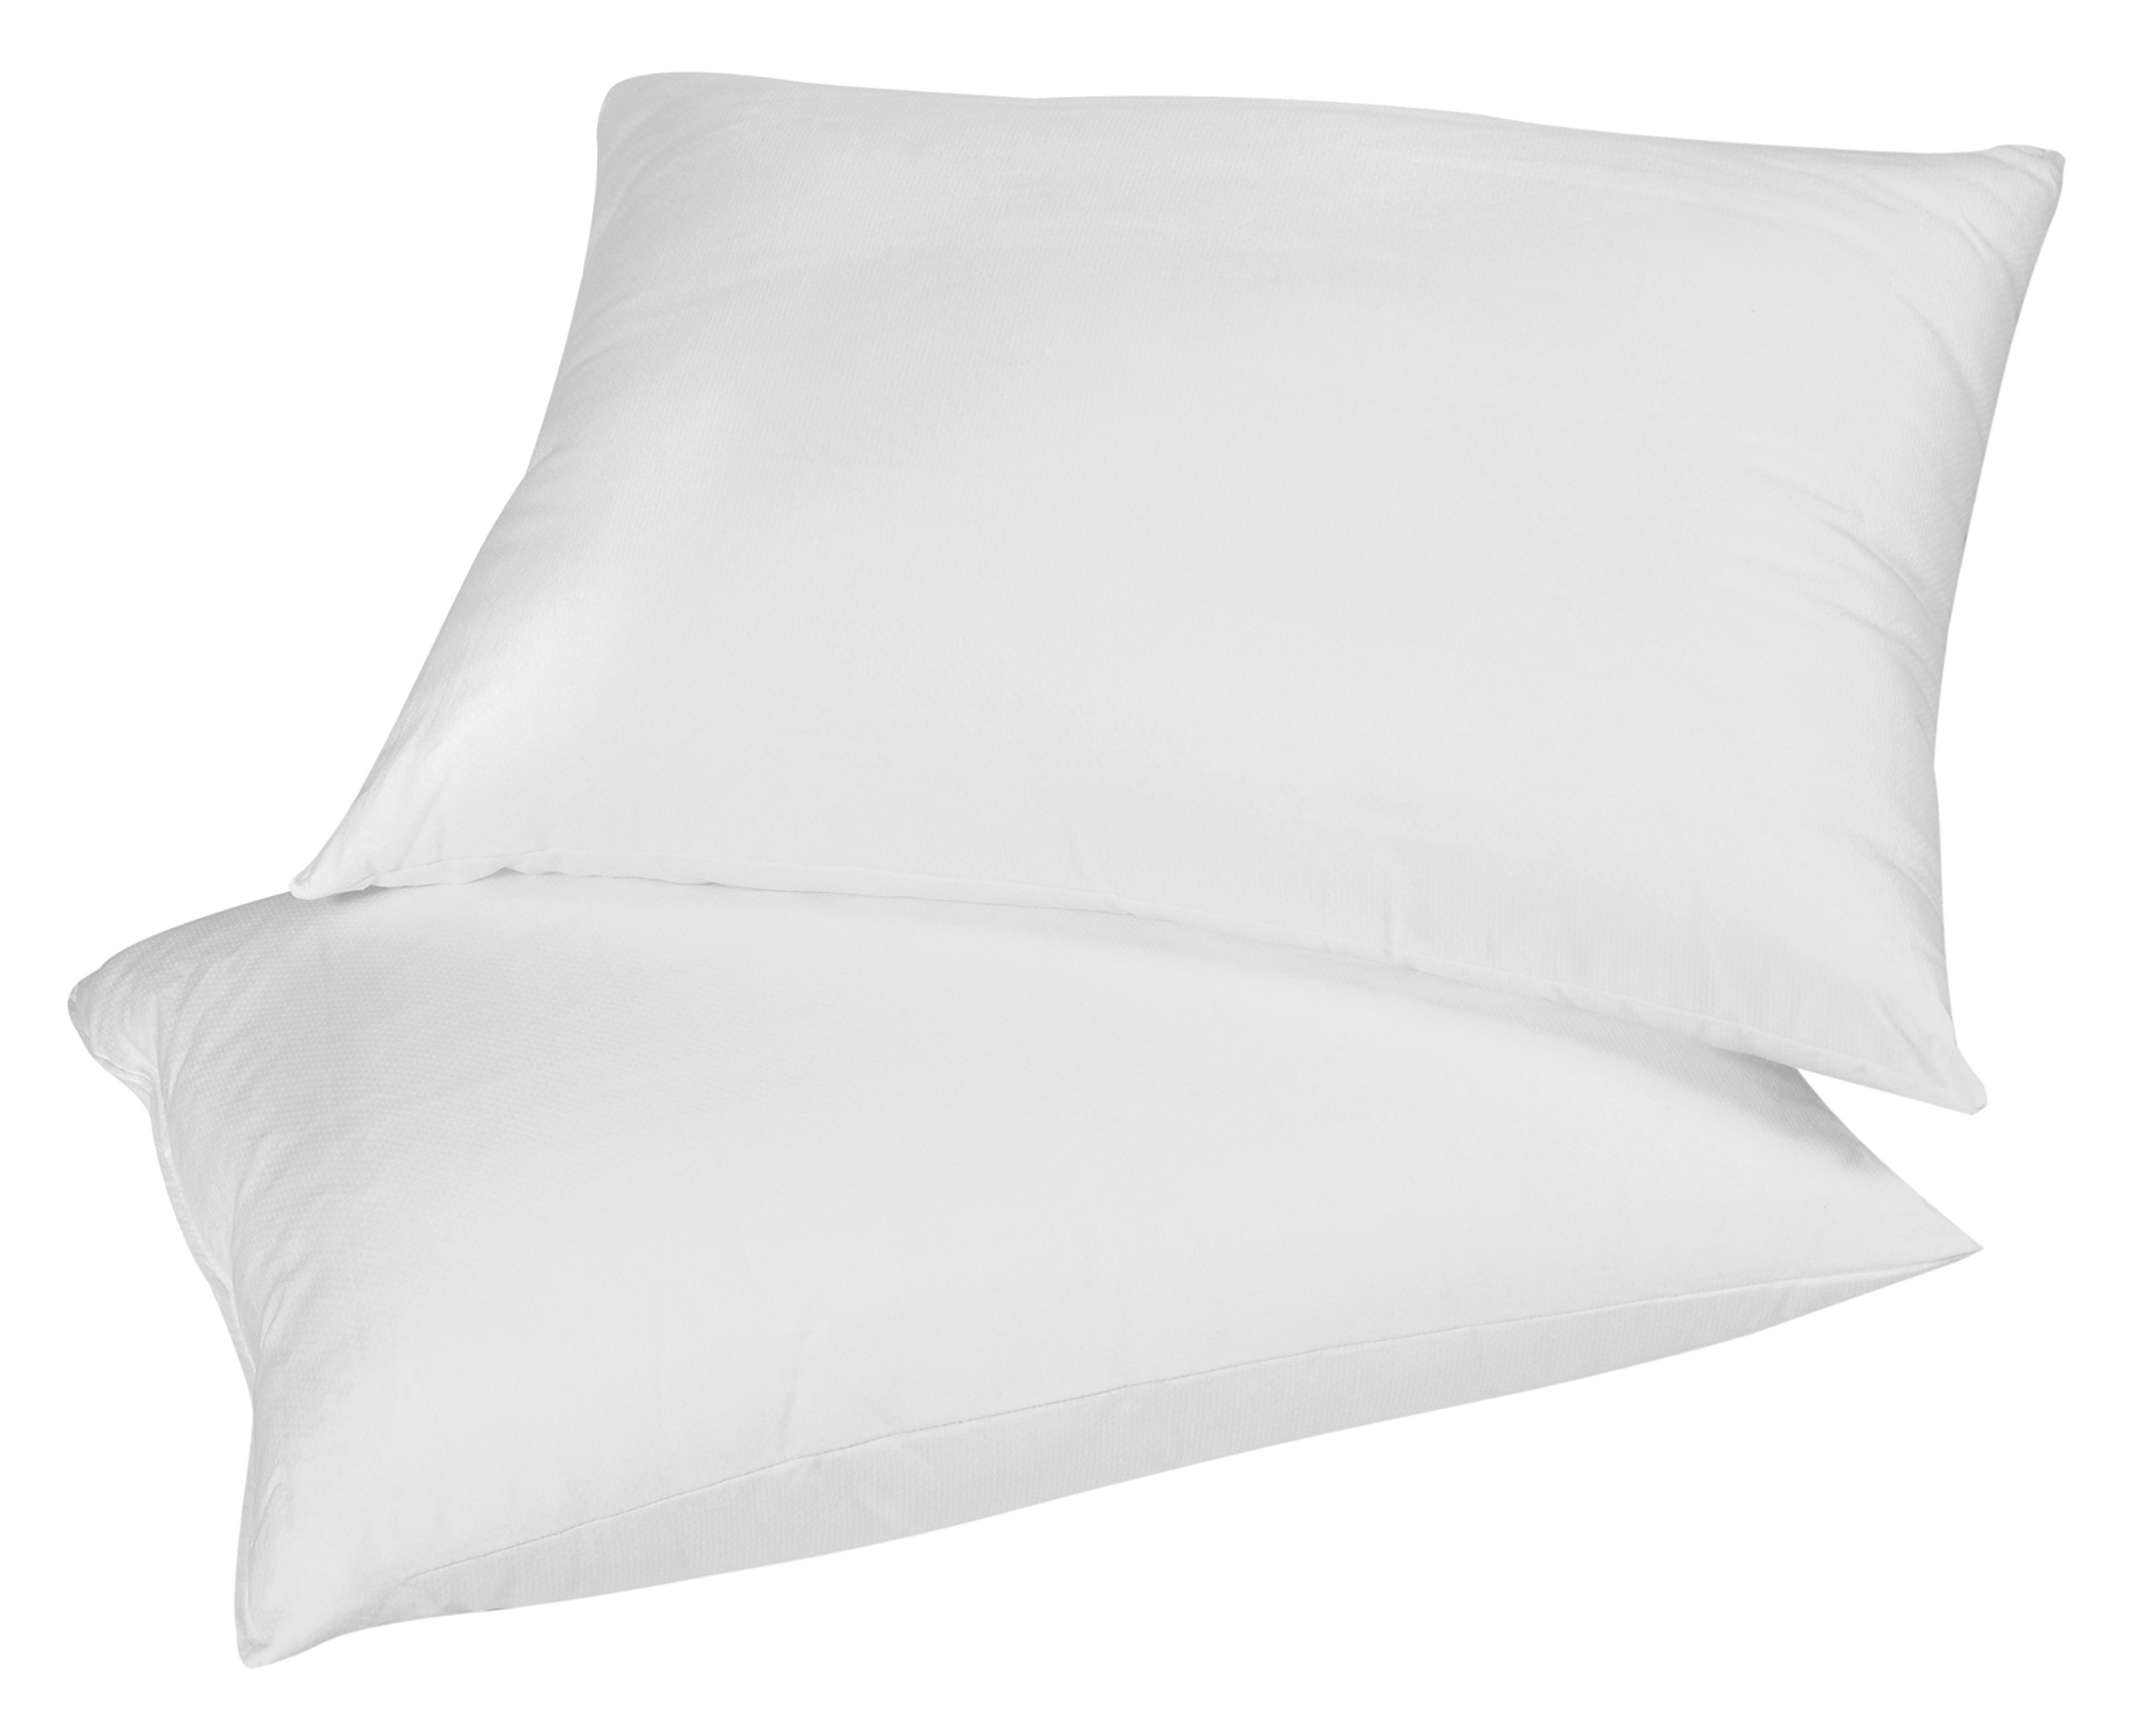 Premium 100% White Goose Down Pillow. Standard Size [Soft] (Set of 2)